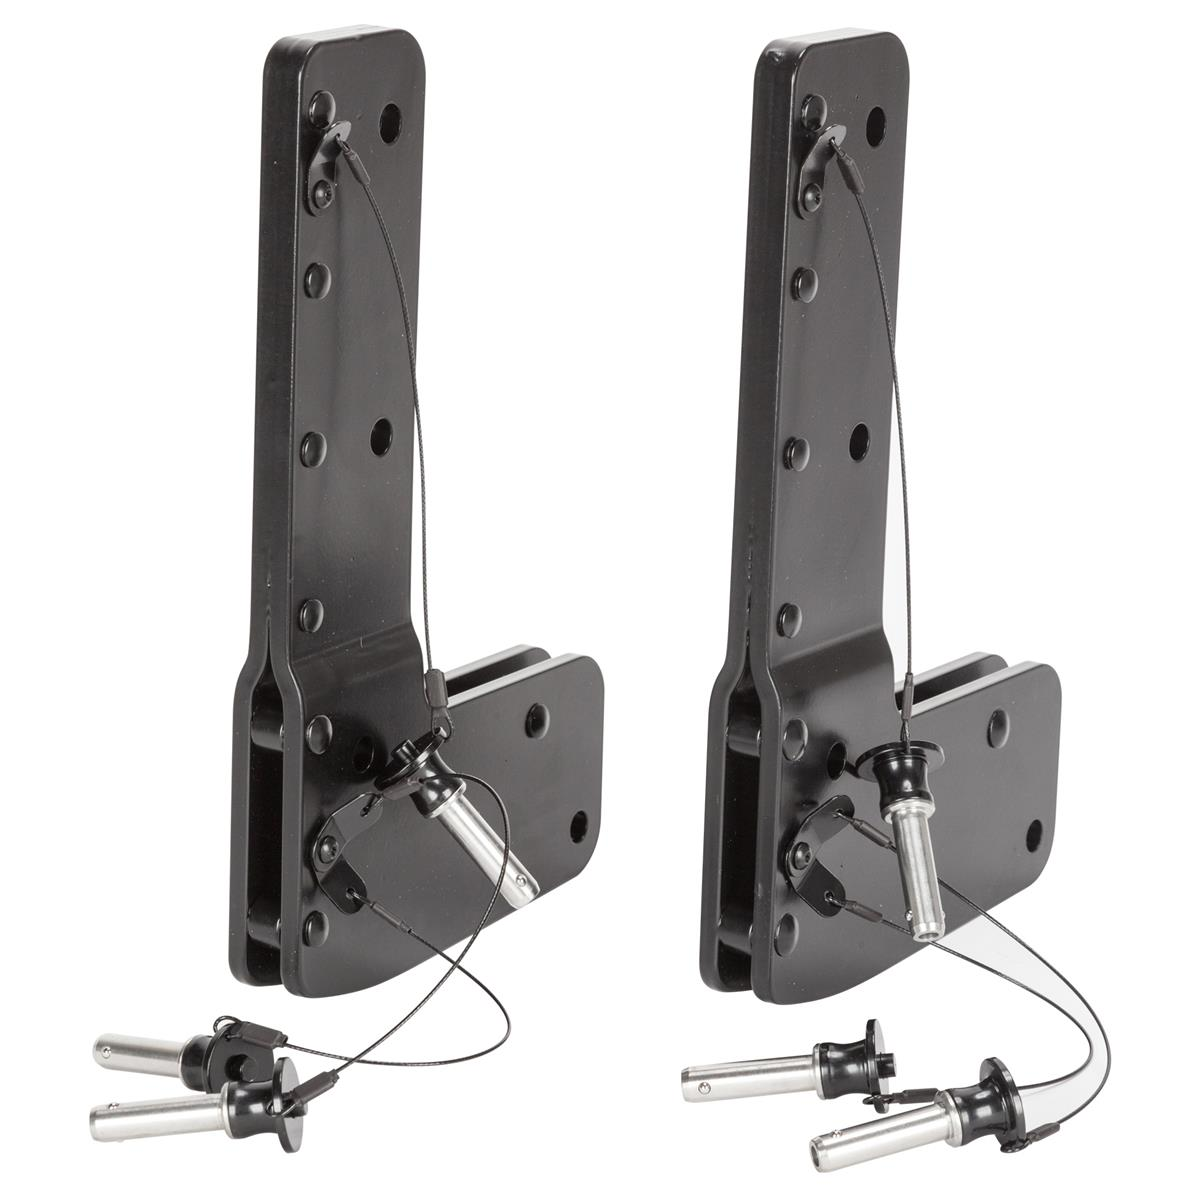 RCF FL-B LINK HDL 10-15 2X Pair of link bar for HDL10 and HD